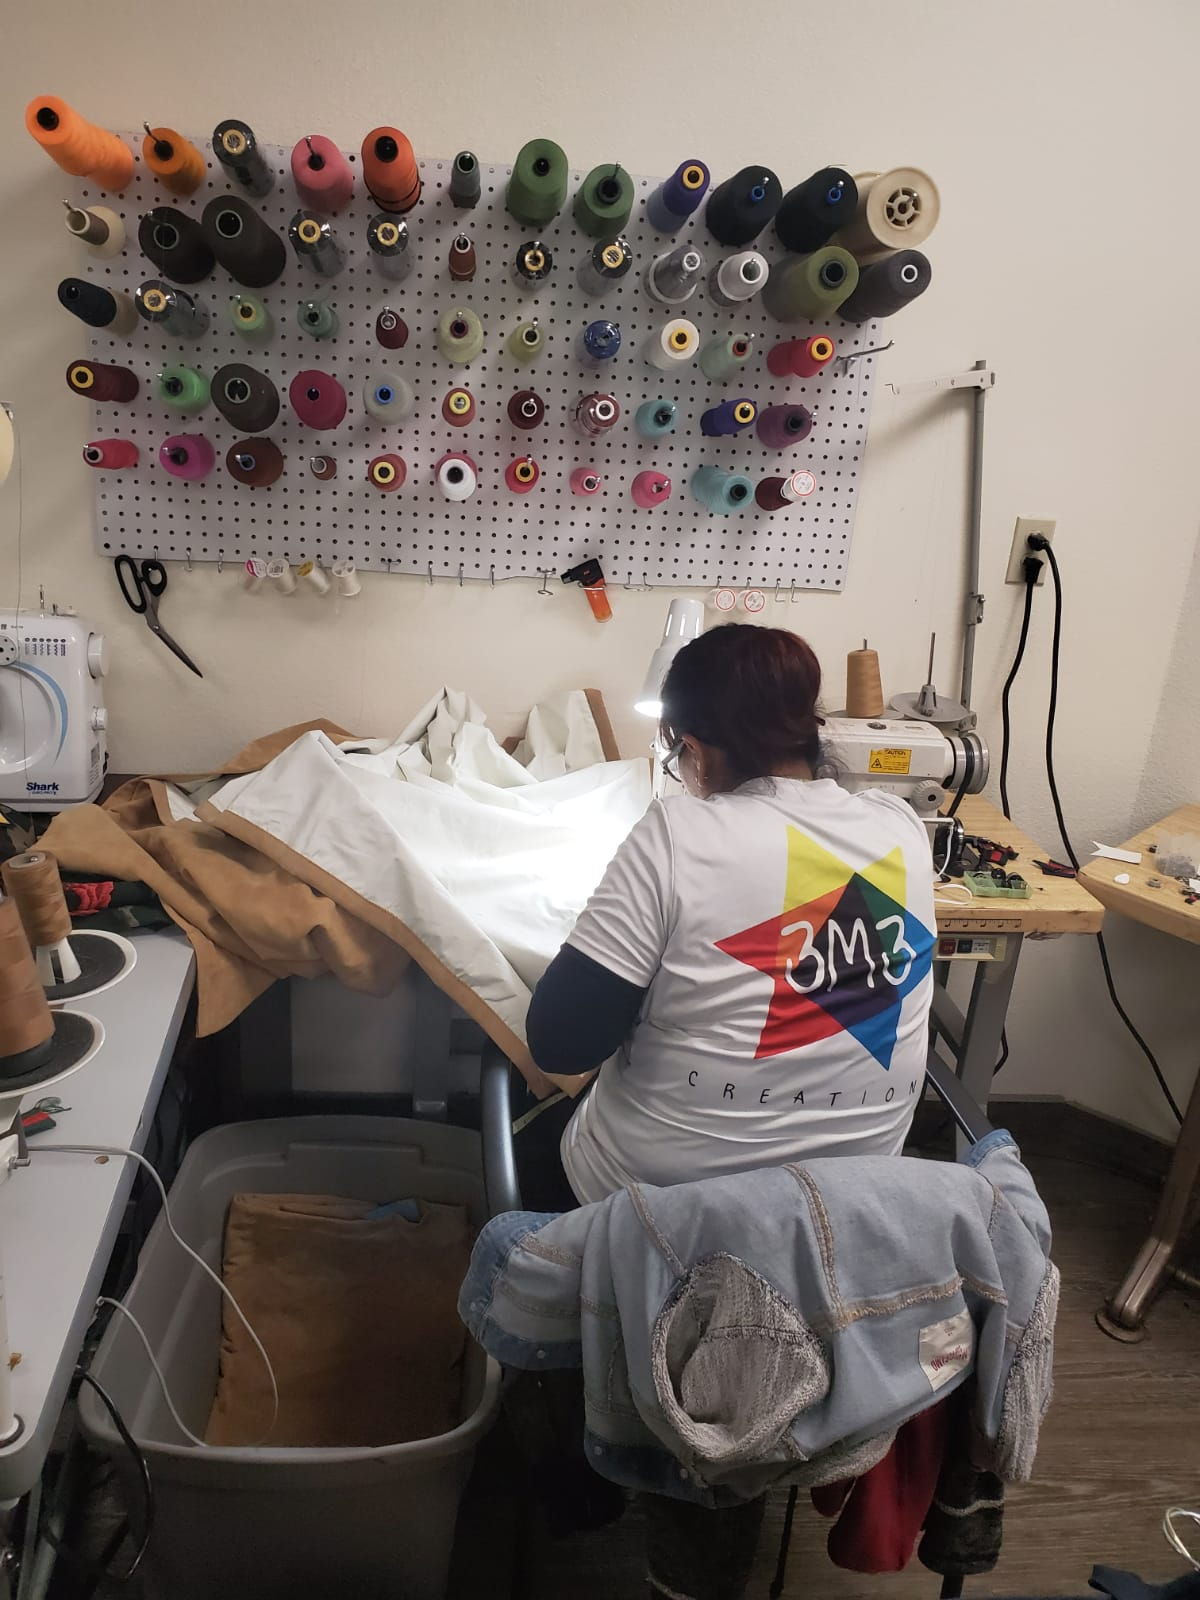 Testimonial | Custom Contract Sewing Services | 3m3 Creations